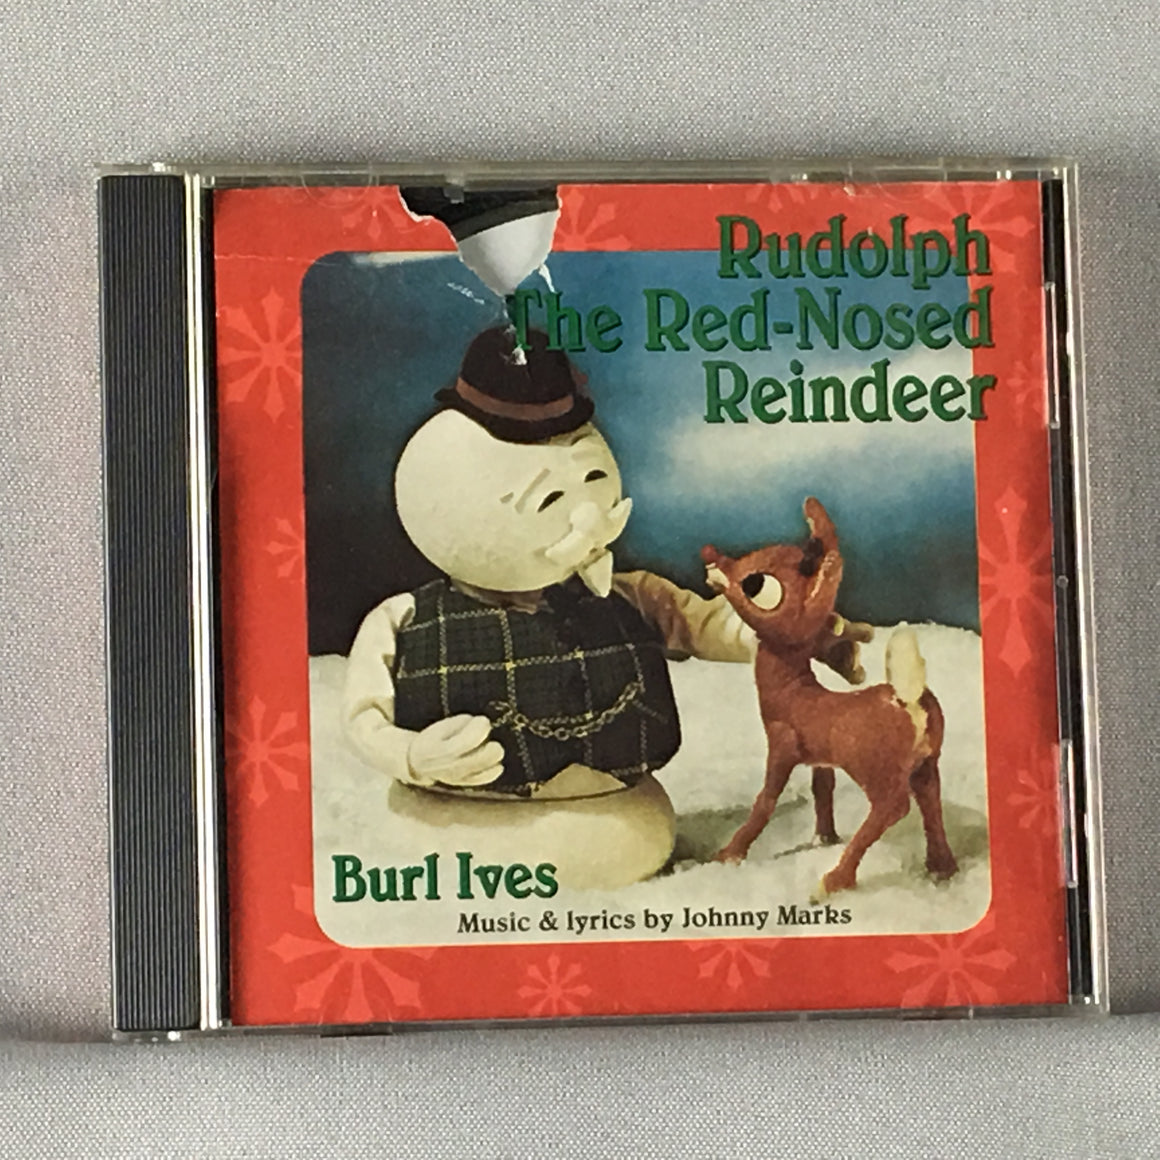 Burl Ives ‎– Rudolph The Red-Nosed Reindeer Used CD VG MCAD-22177